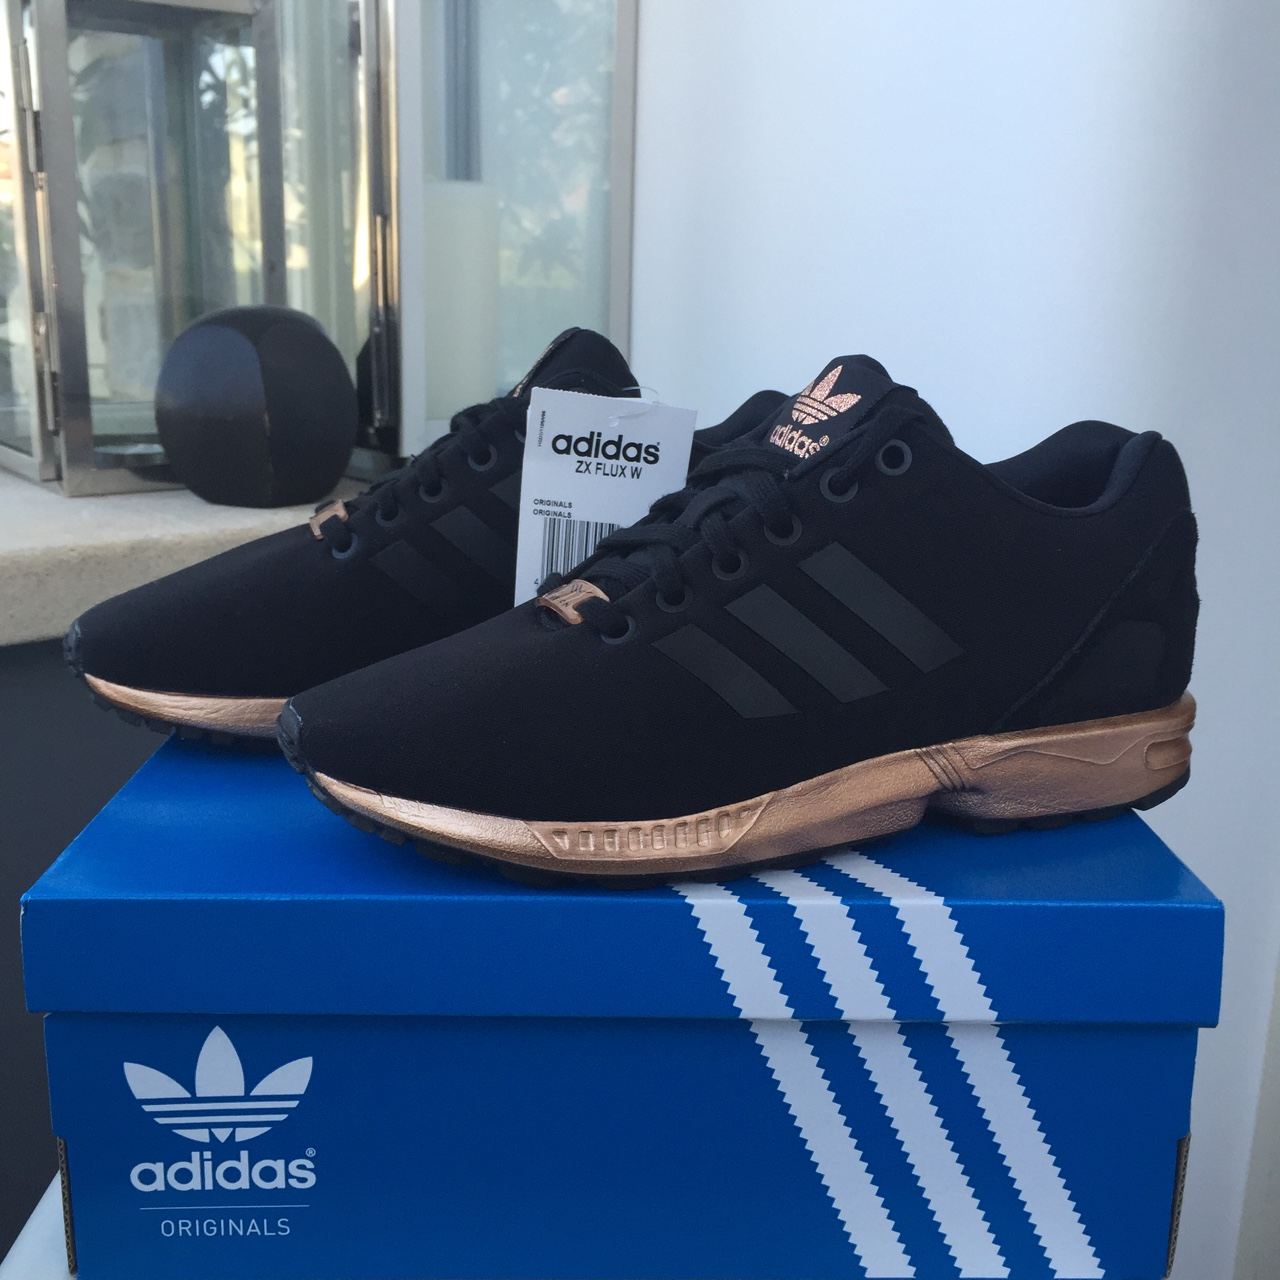 super popular d9297 21270 Women's Adidas ZX Flux Black/Copper Metallic - Sizes ...